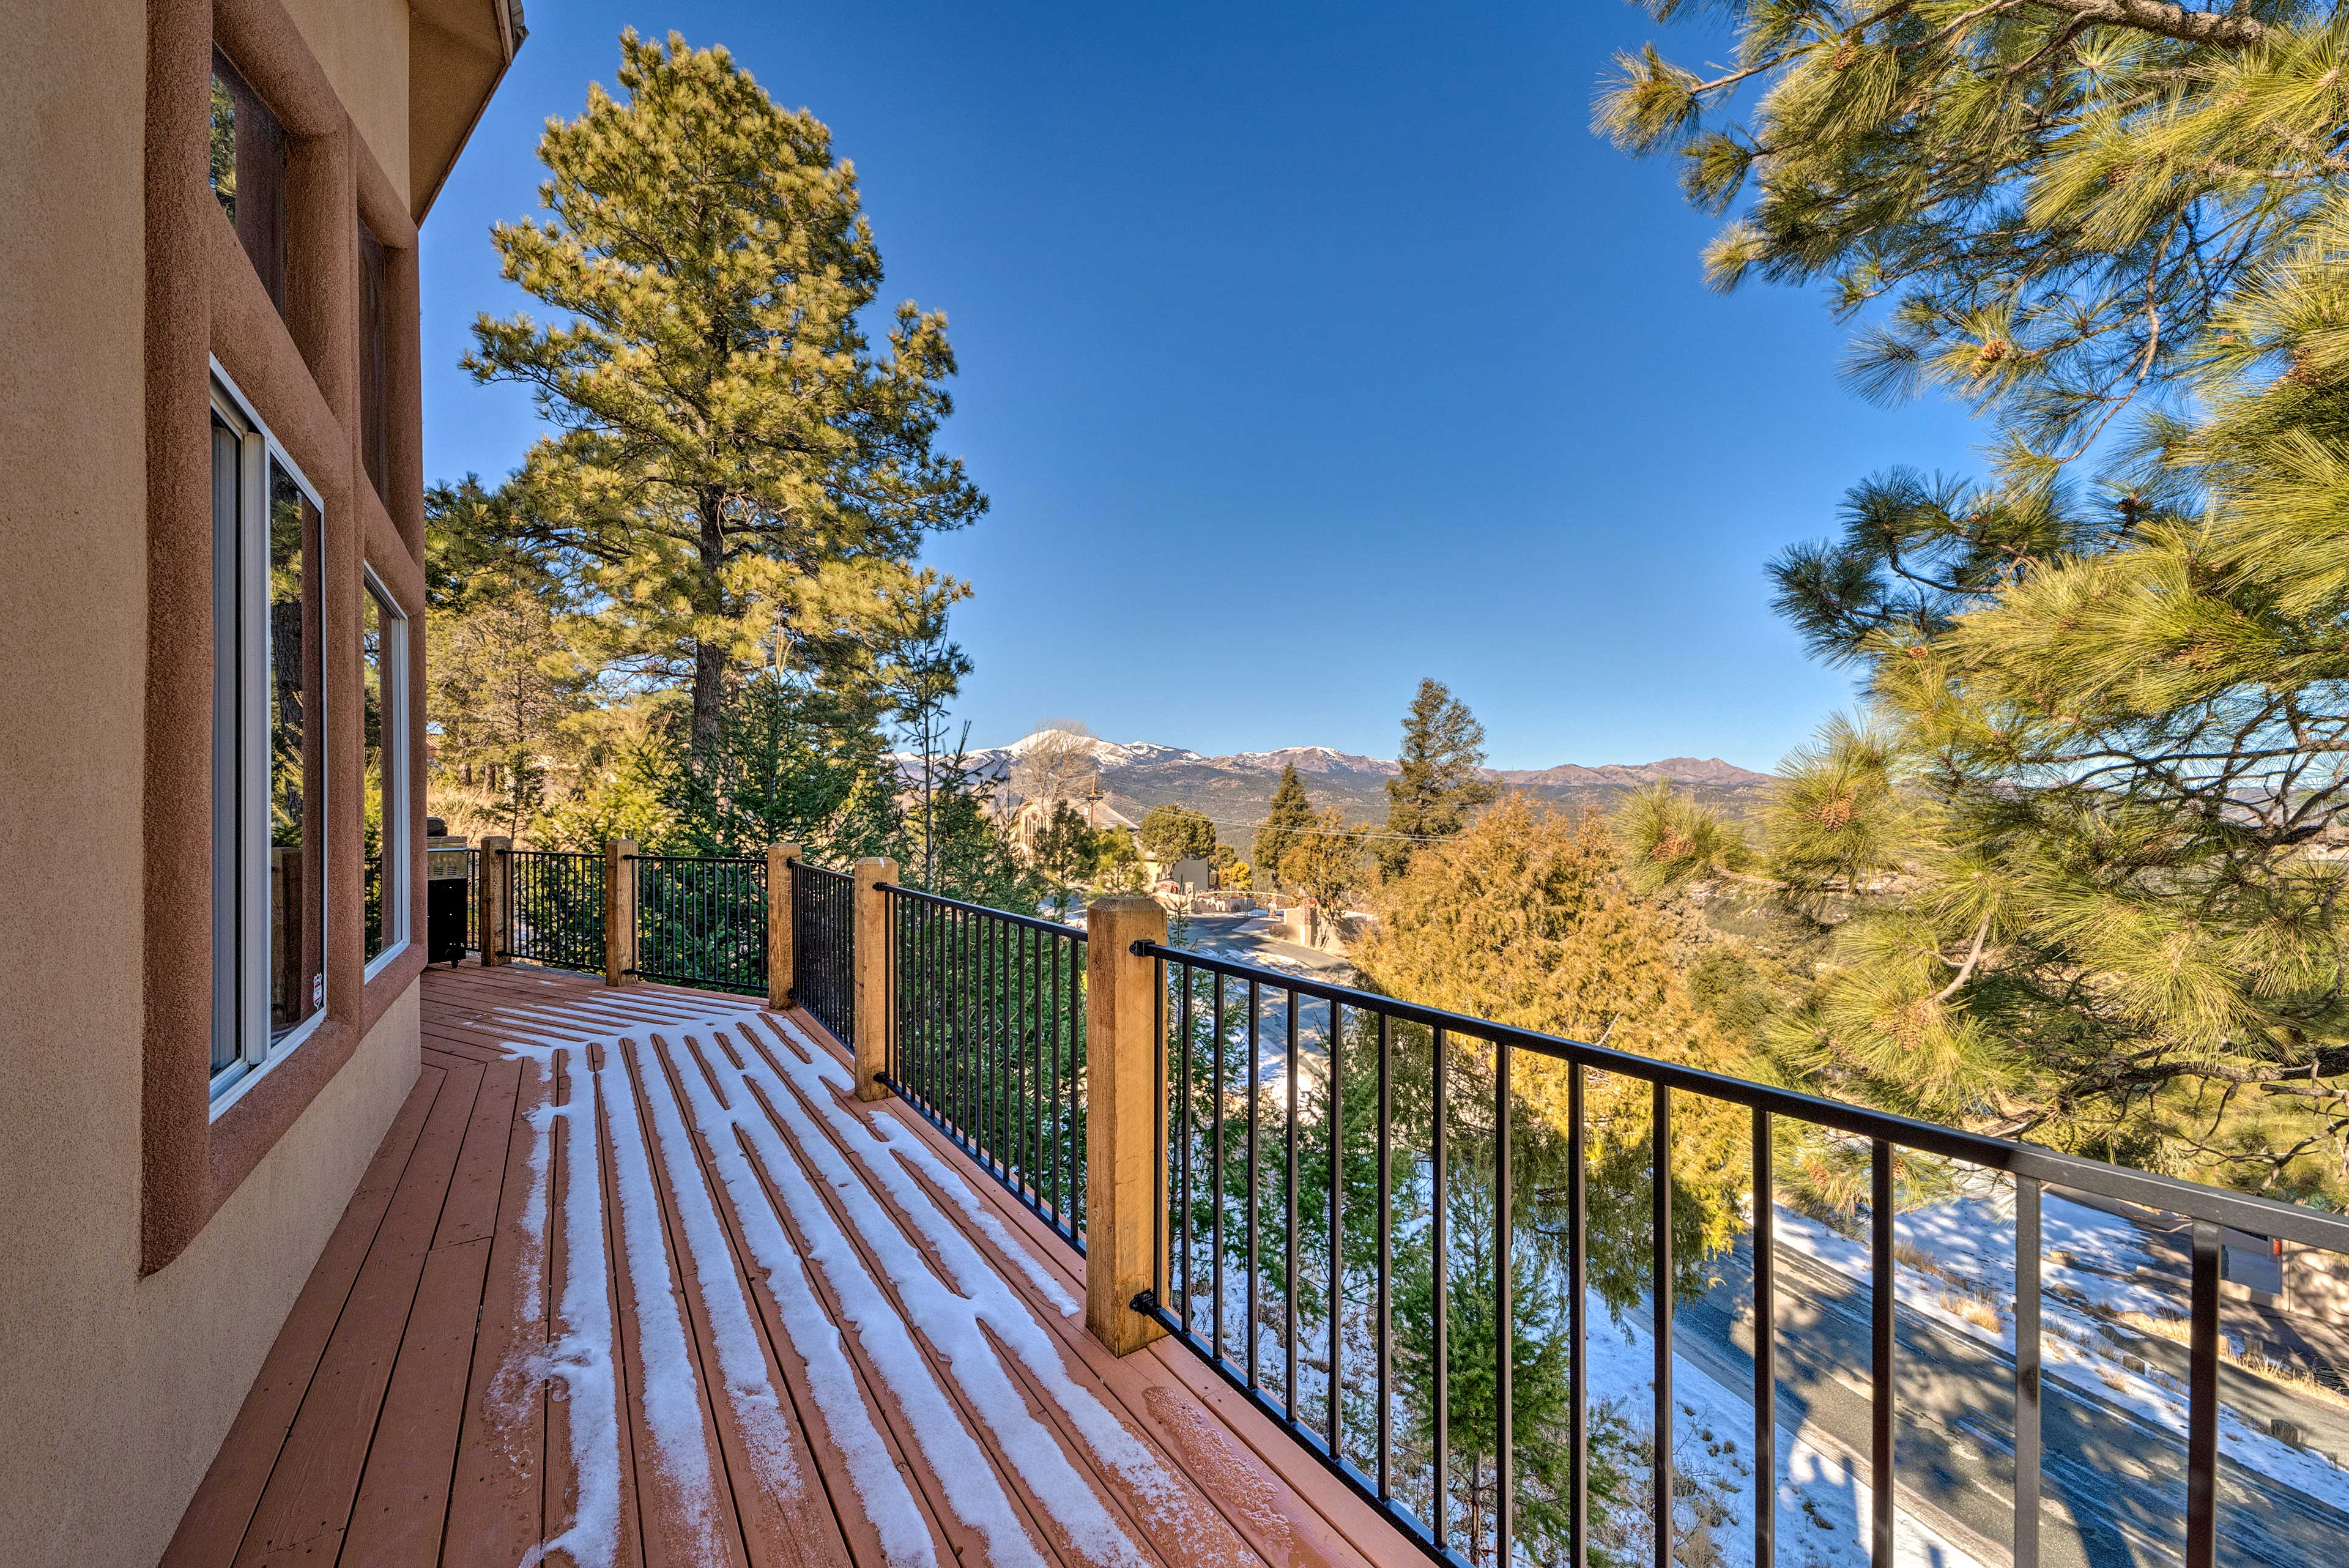 These high country views will have you feeling on top of the world!